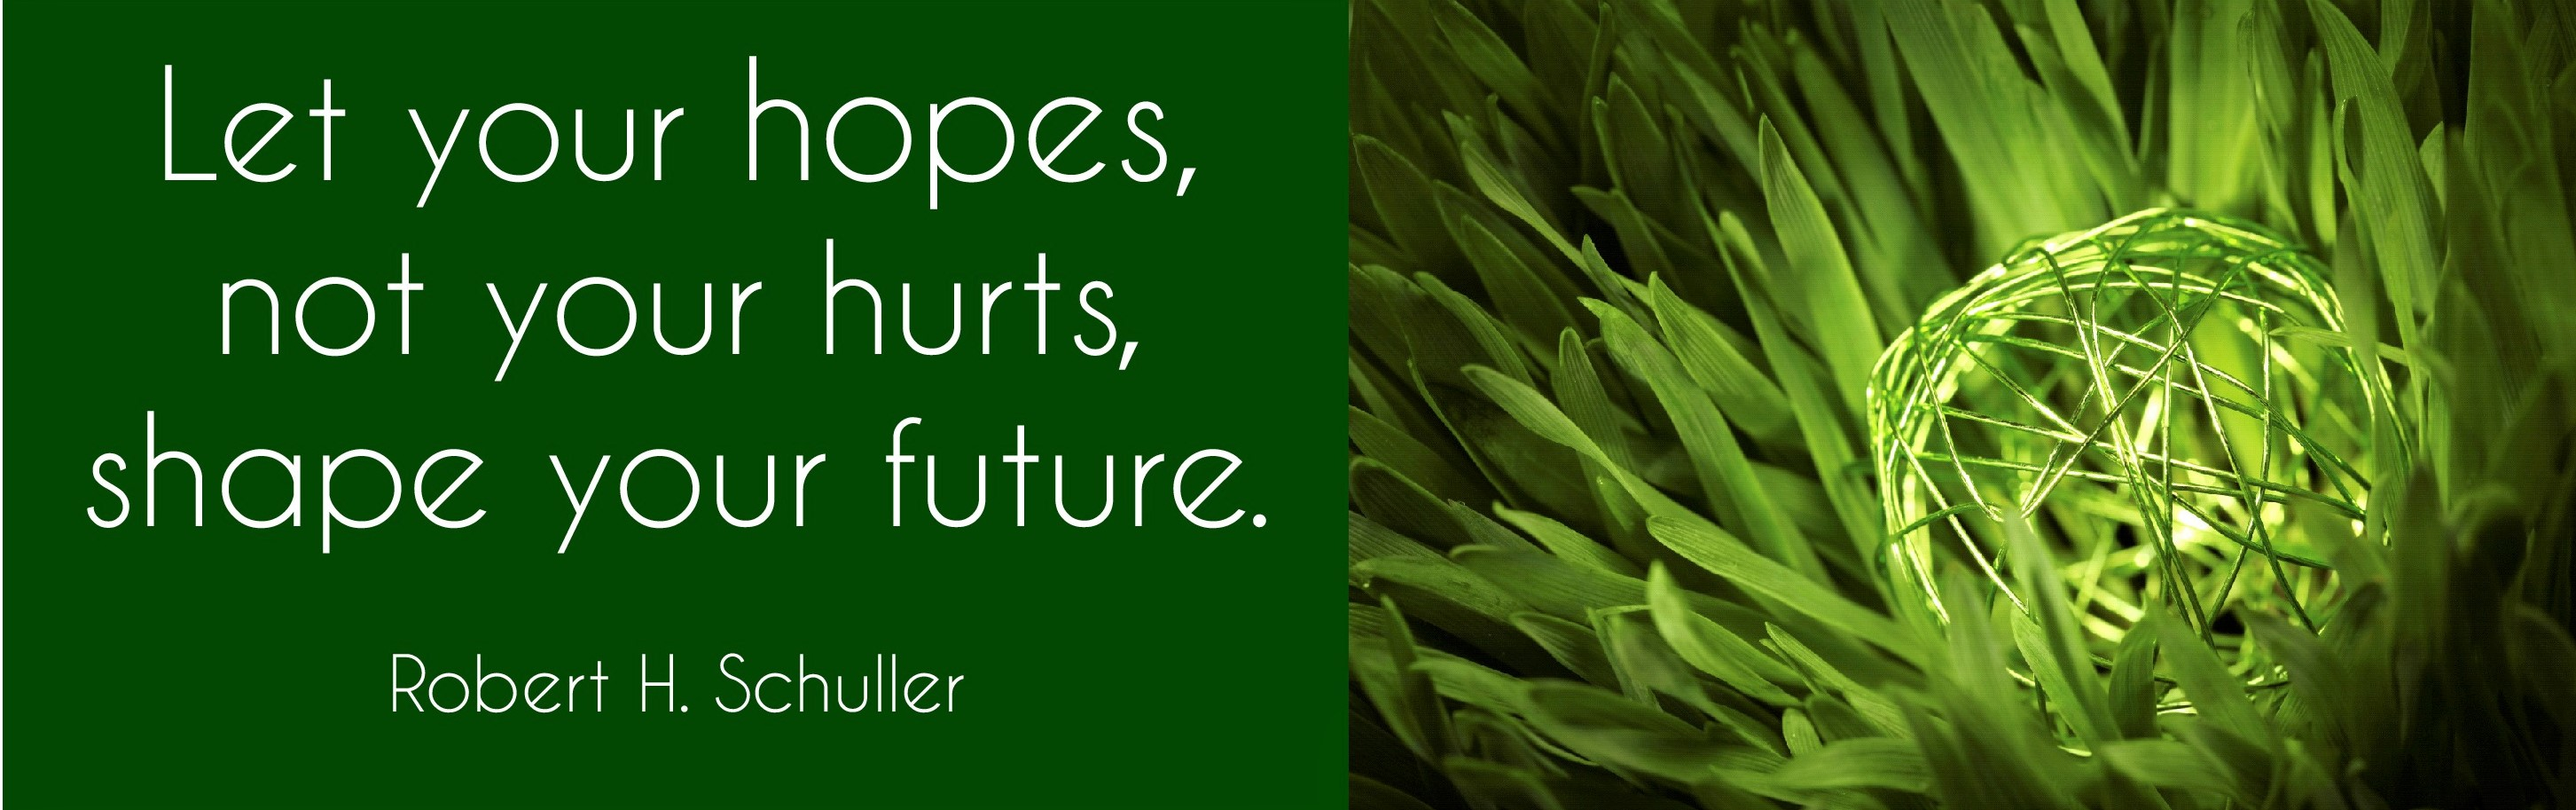 Let your hopes shape your future